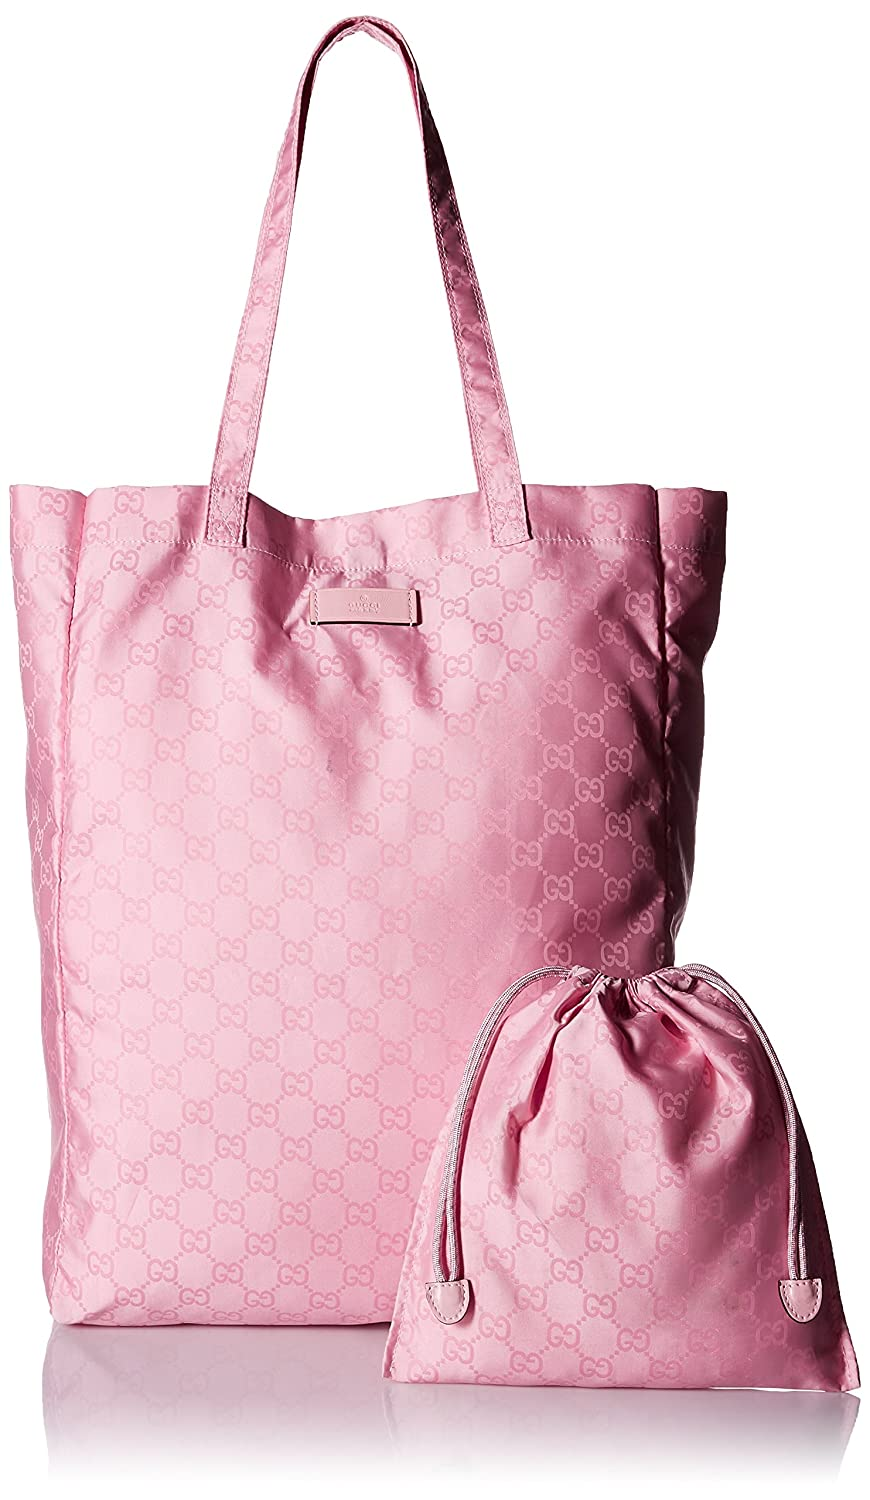 8210fa597 Amazon.com : Gucci Mama's Bag 281487 Baby Pink Nylon Gg Logo Tote Bag : Baby